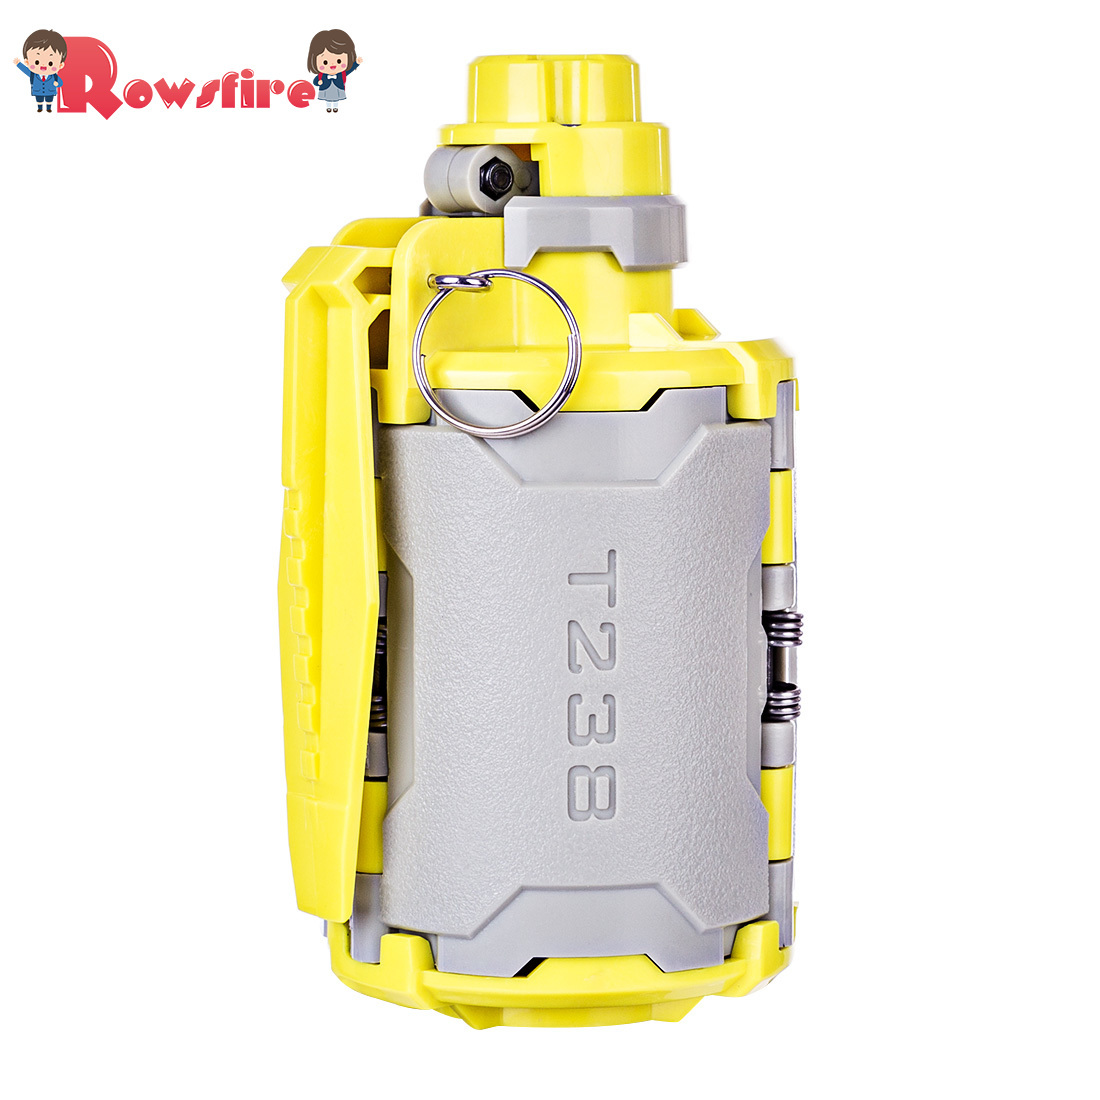 DIY Gun Toy Water Gel Blaster Set With Time-Delayed Function For Gel <font><b>Ball</b></font> <font><b>BBs</b></font> Airsoft Wargame - Grey + Yellow image